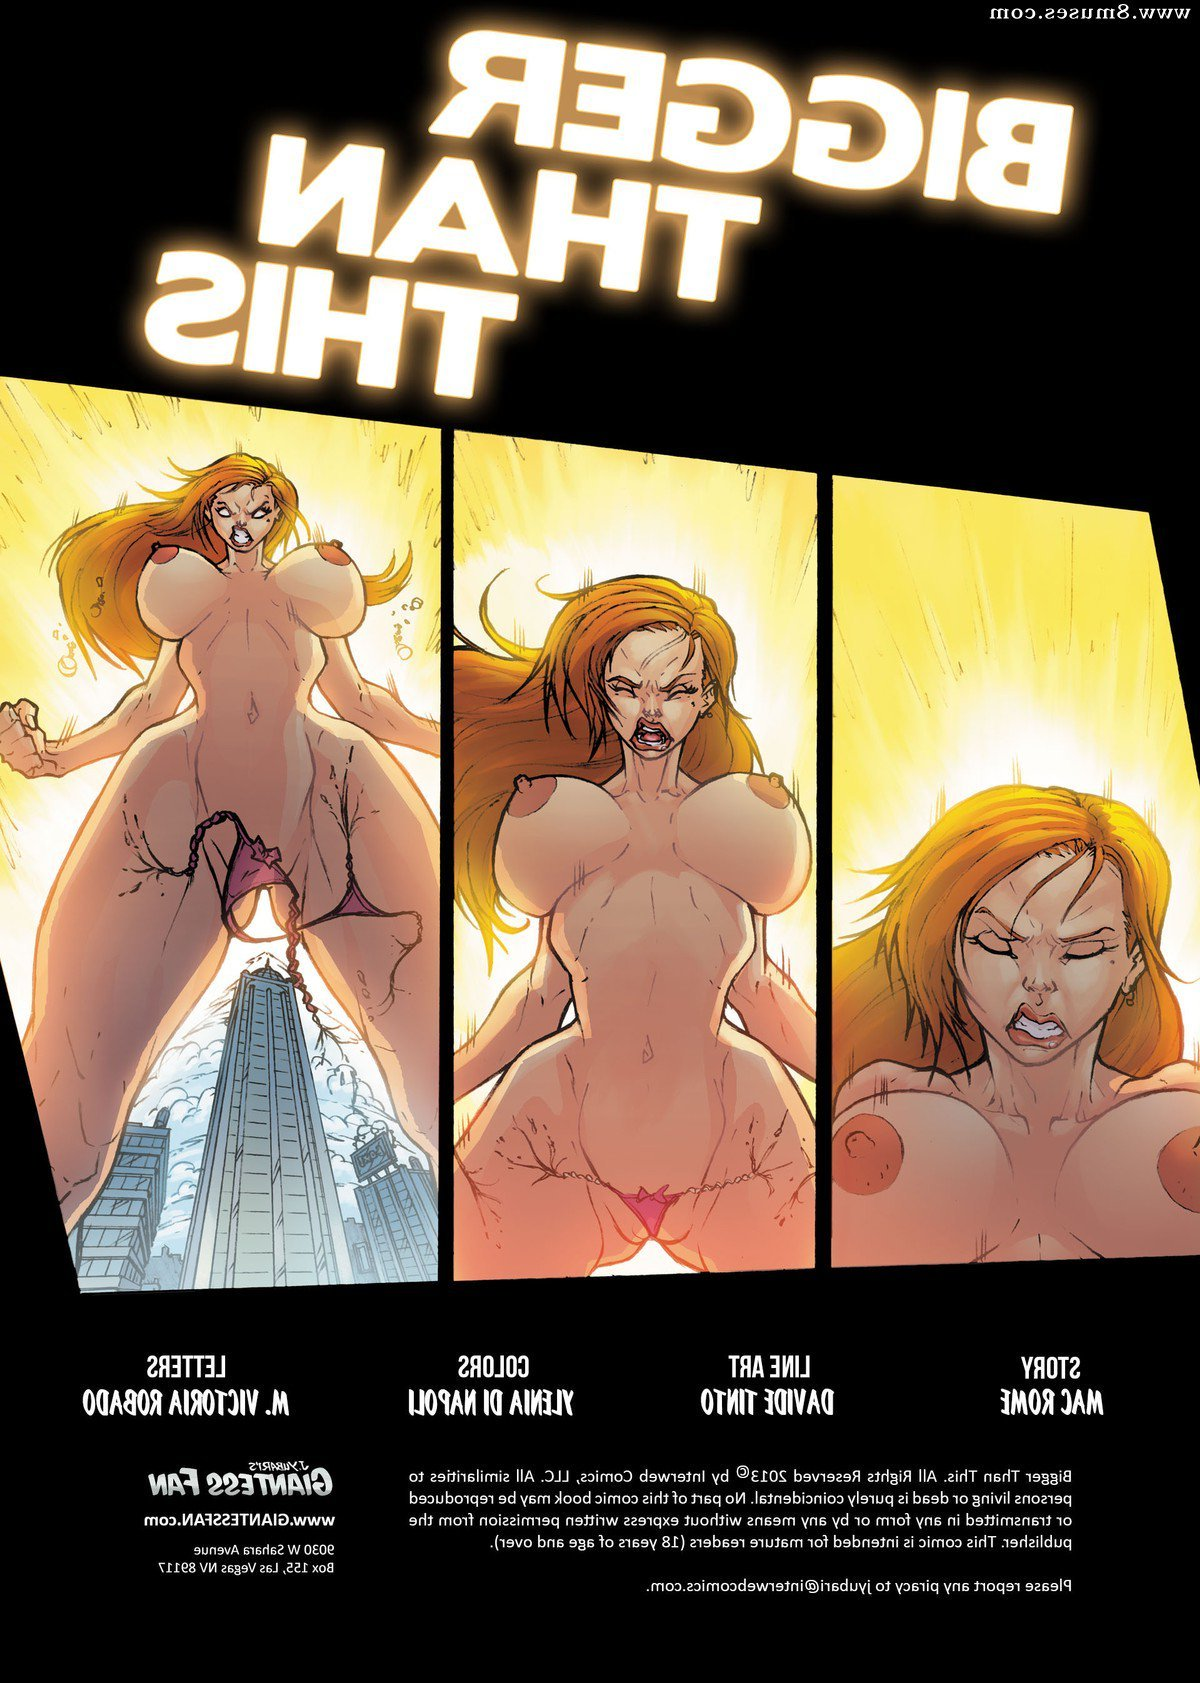 Giantess-Fan-Comics/Bigger-Than-This/Issue-2 Bigger_Than_This_-_Issue_2_2.jpg